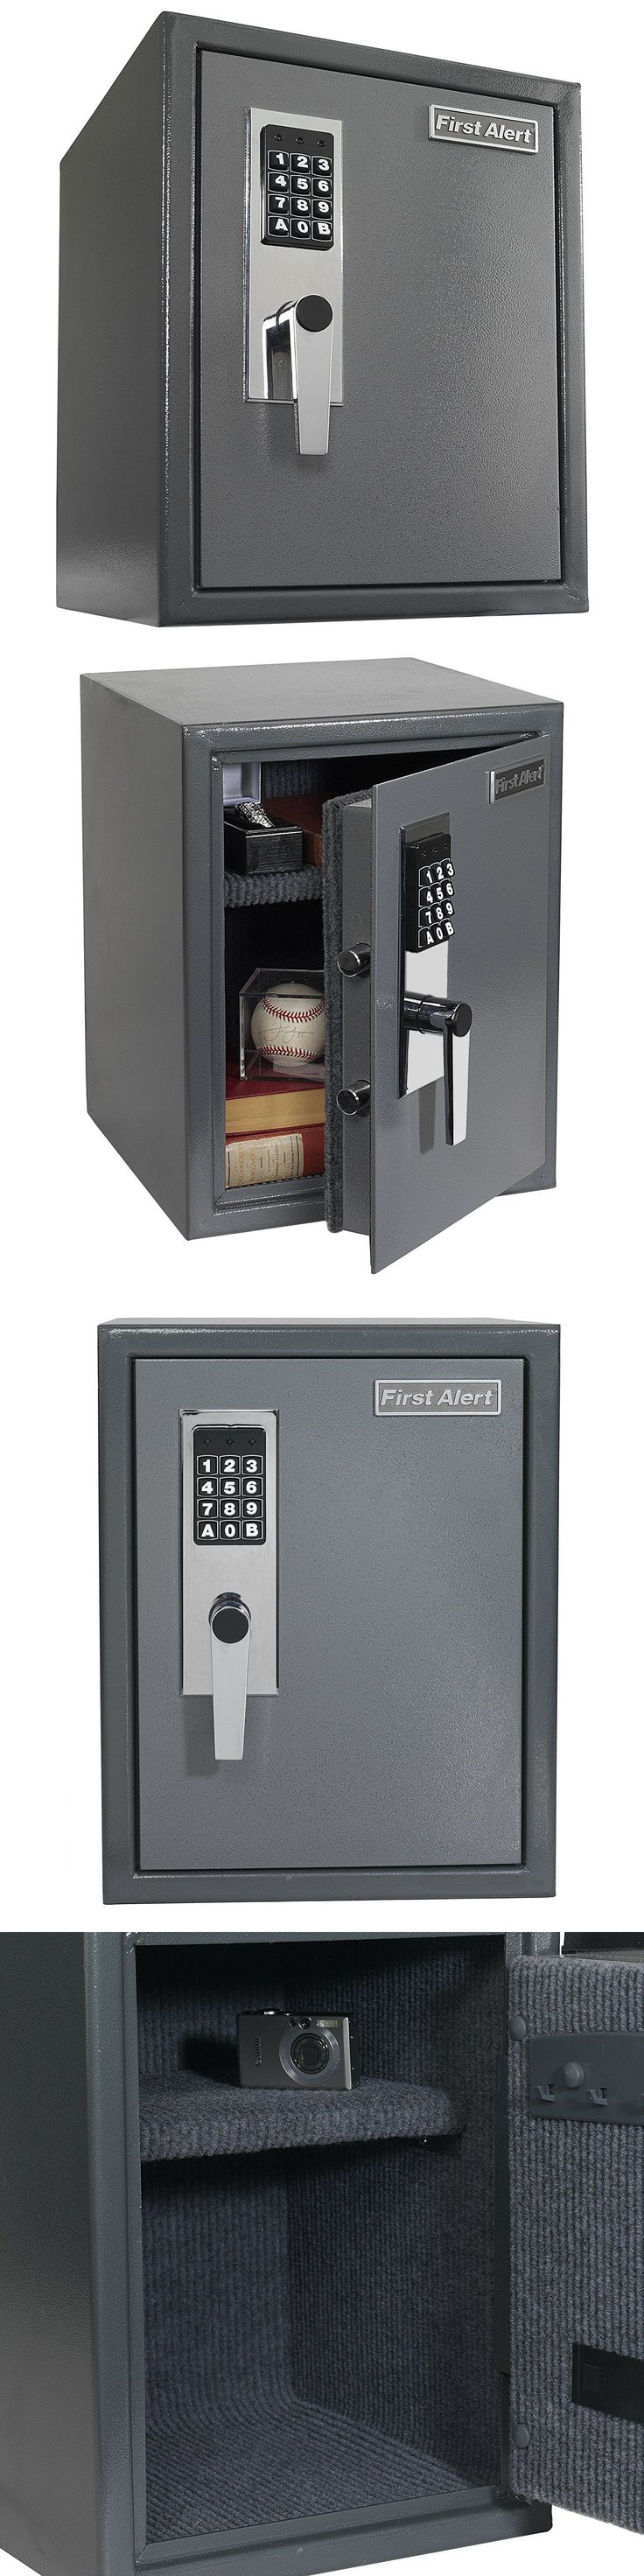 Safes 121836: Digital Fire Proof Safe Secure Storage Jewelry Cash Valuables Office Hotel Shop -> BUY IT NOW ONLY: $109.99 on eBay!